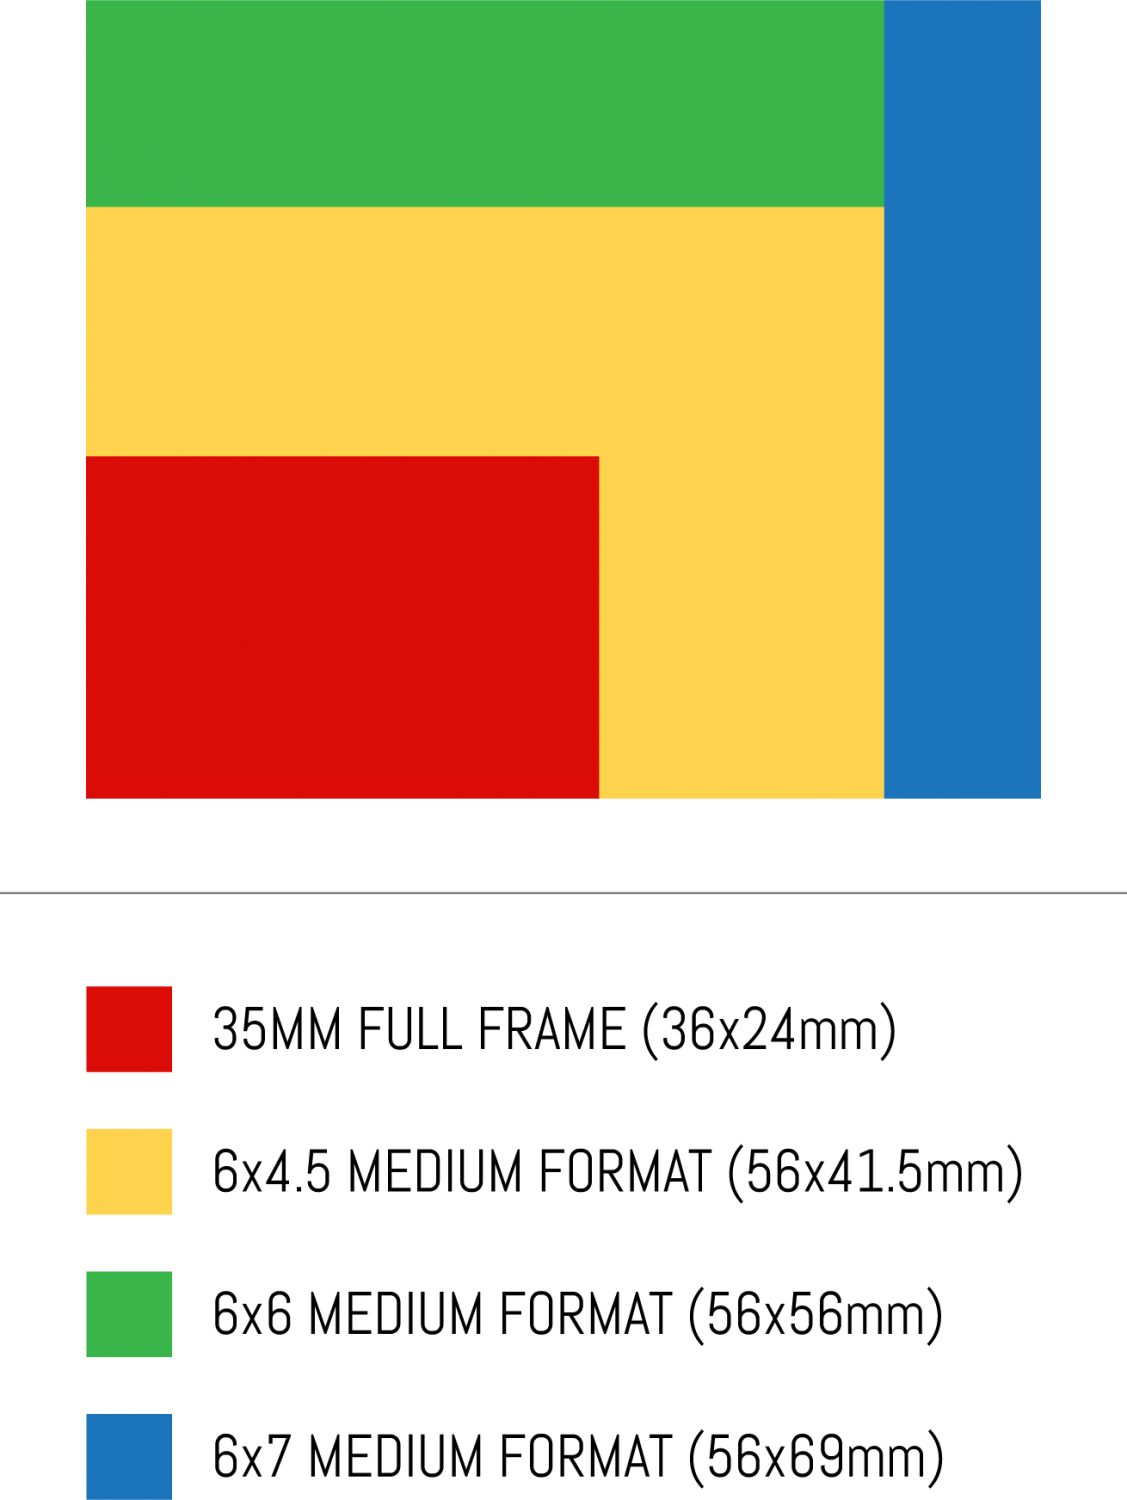 Film format comparision - 35mm, 6x4.5, 6x6 and 6x7